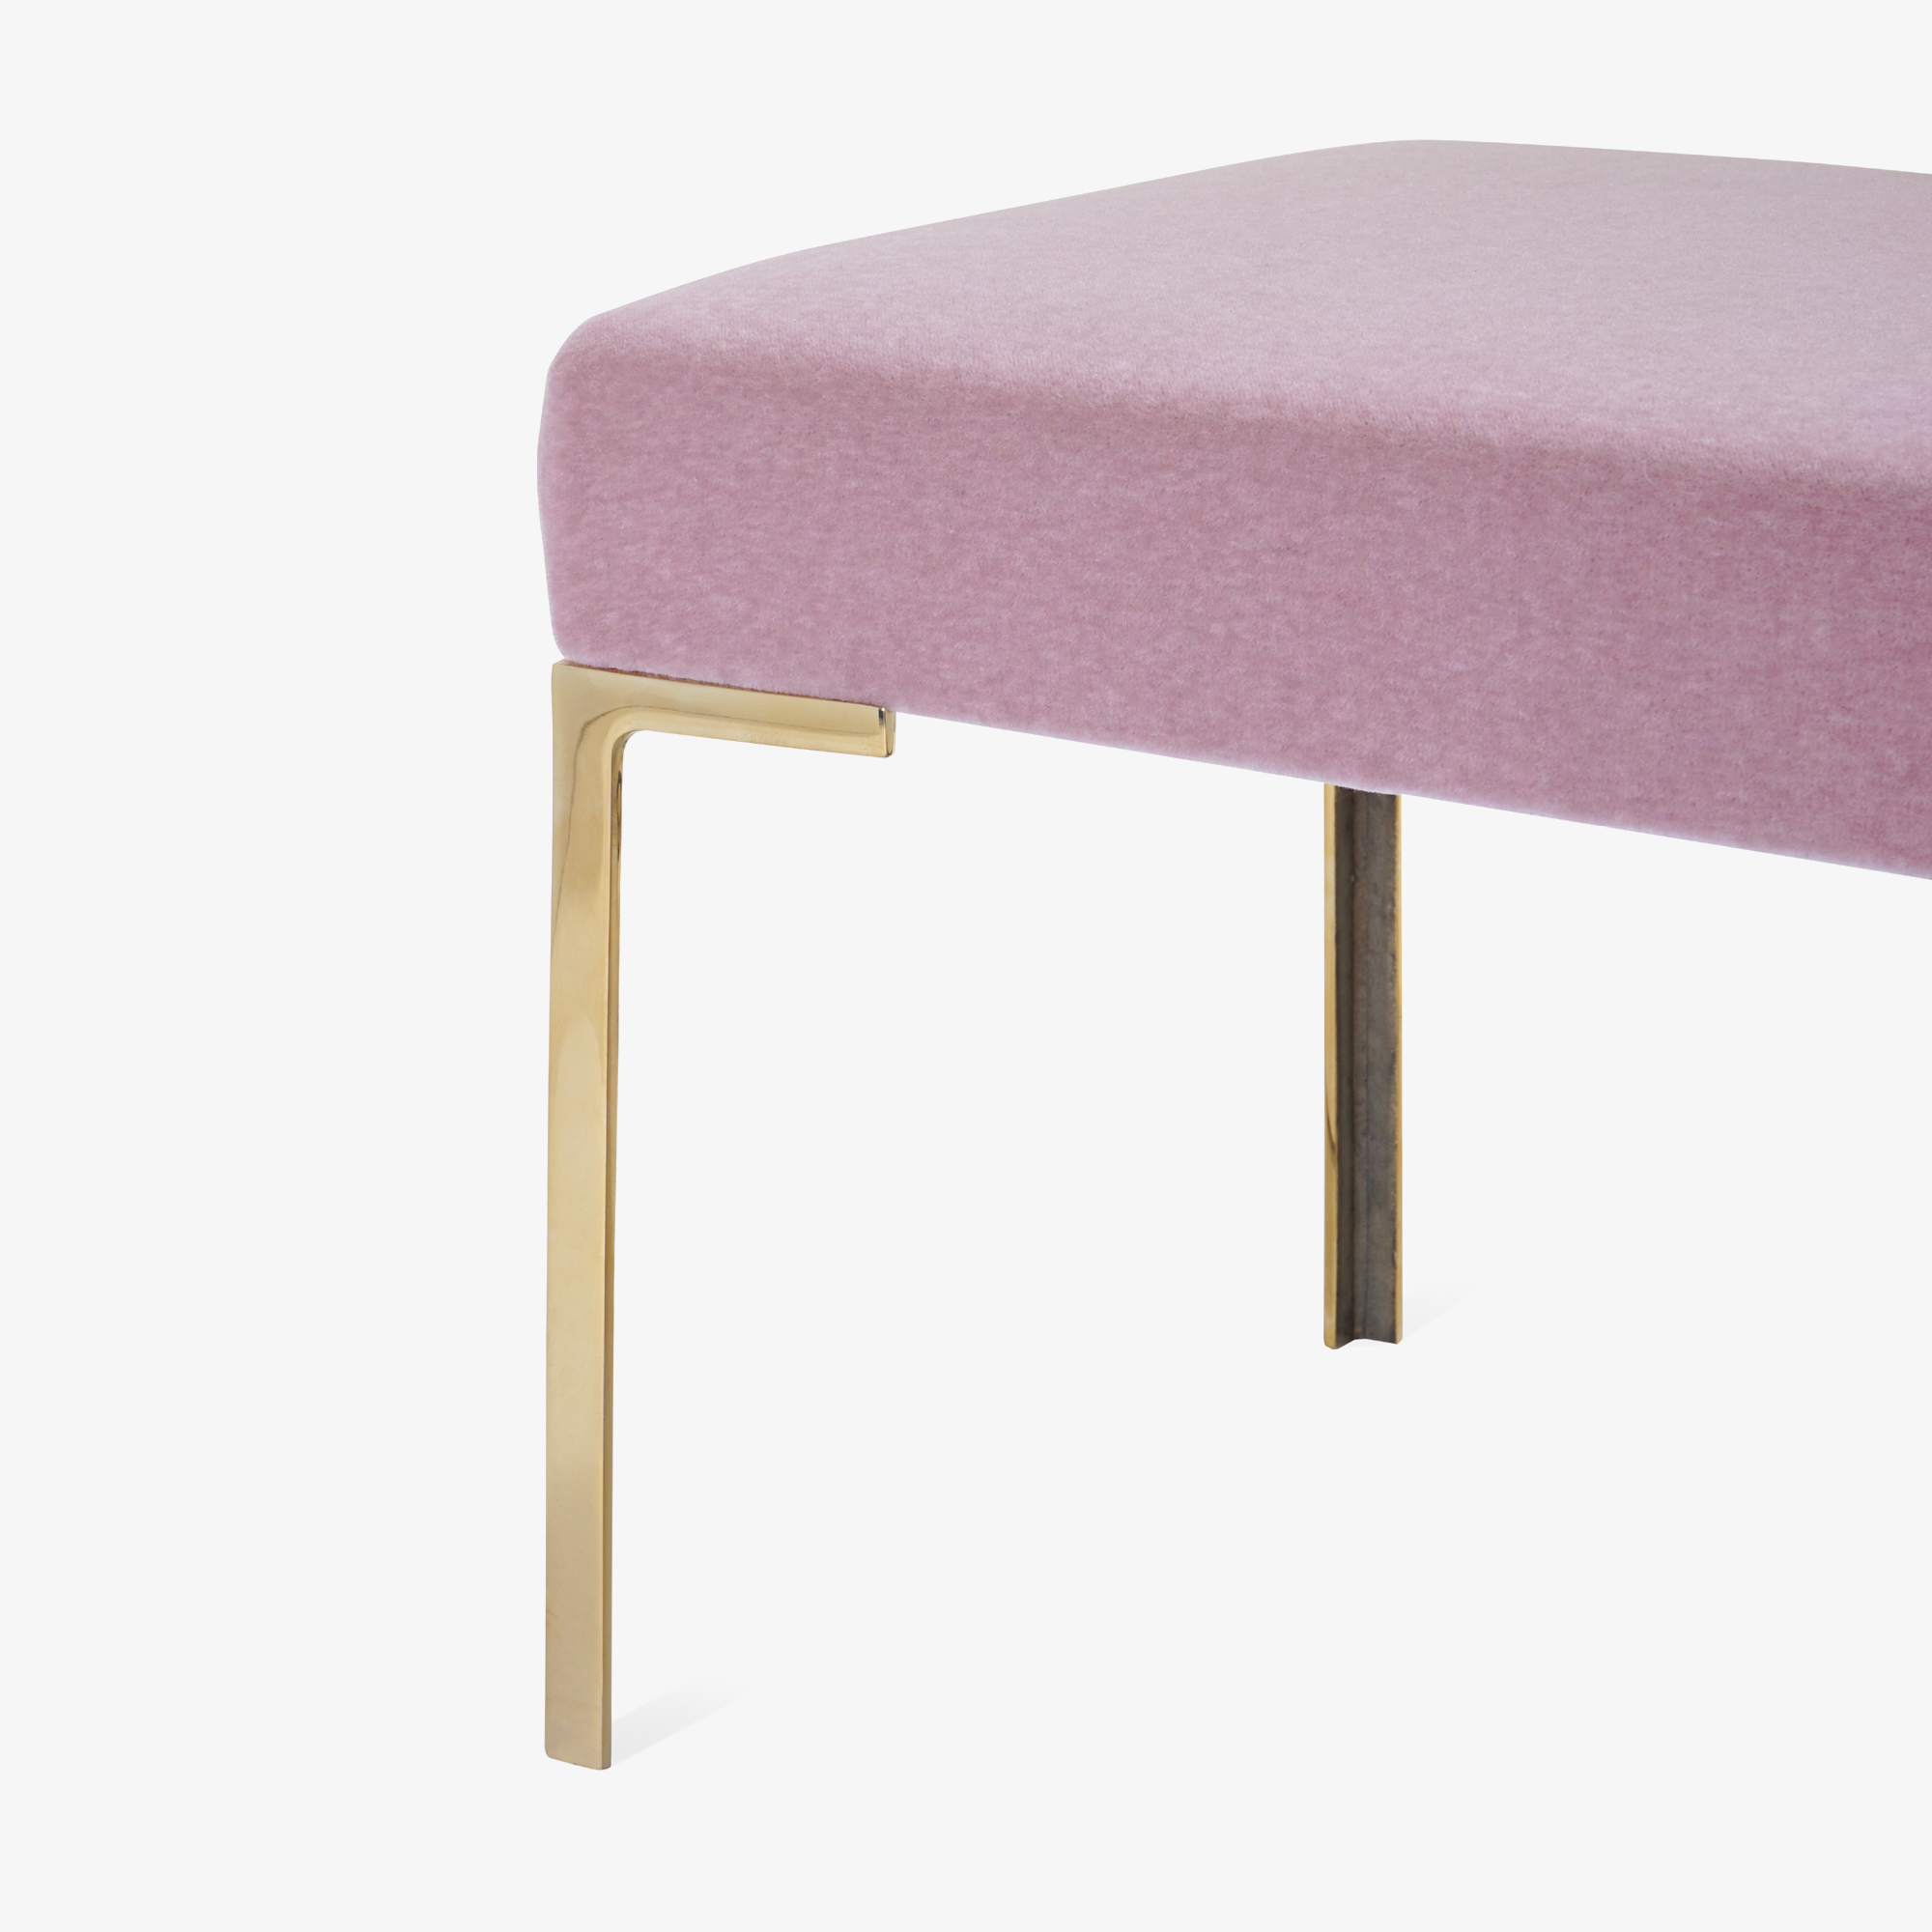 Astor 60%22 Brass Bench in Mohair4.png